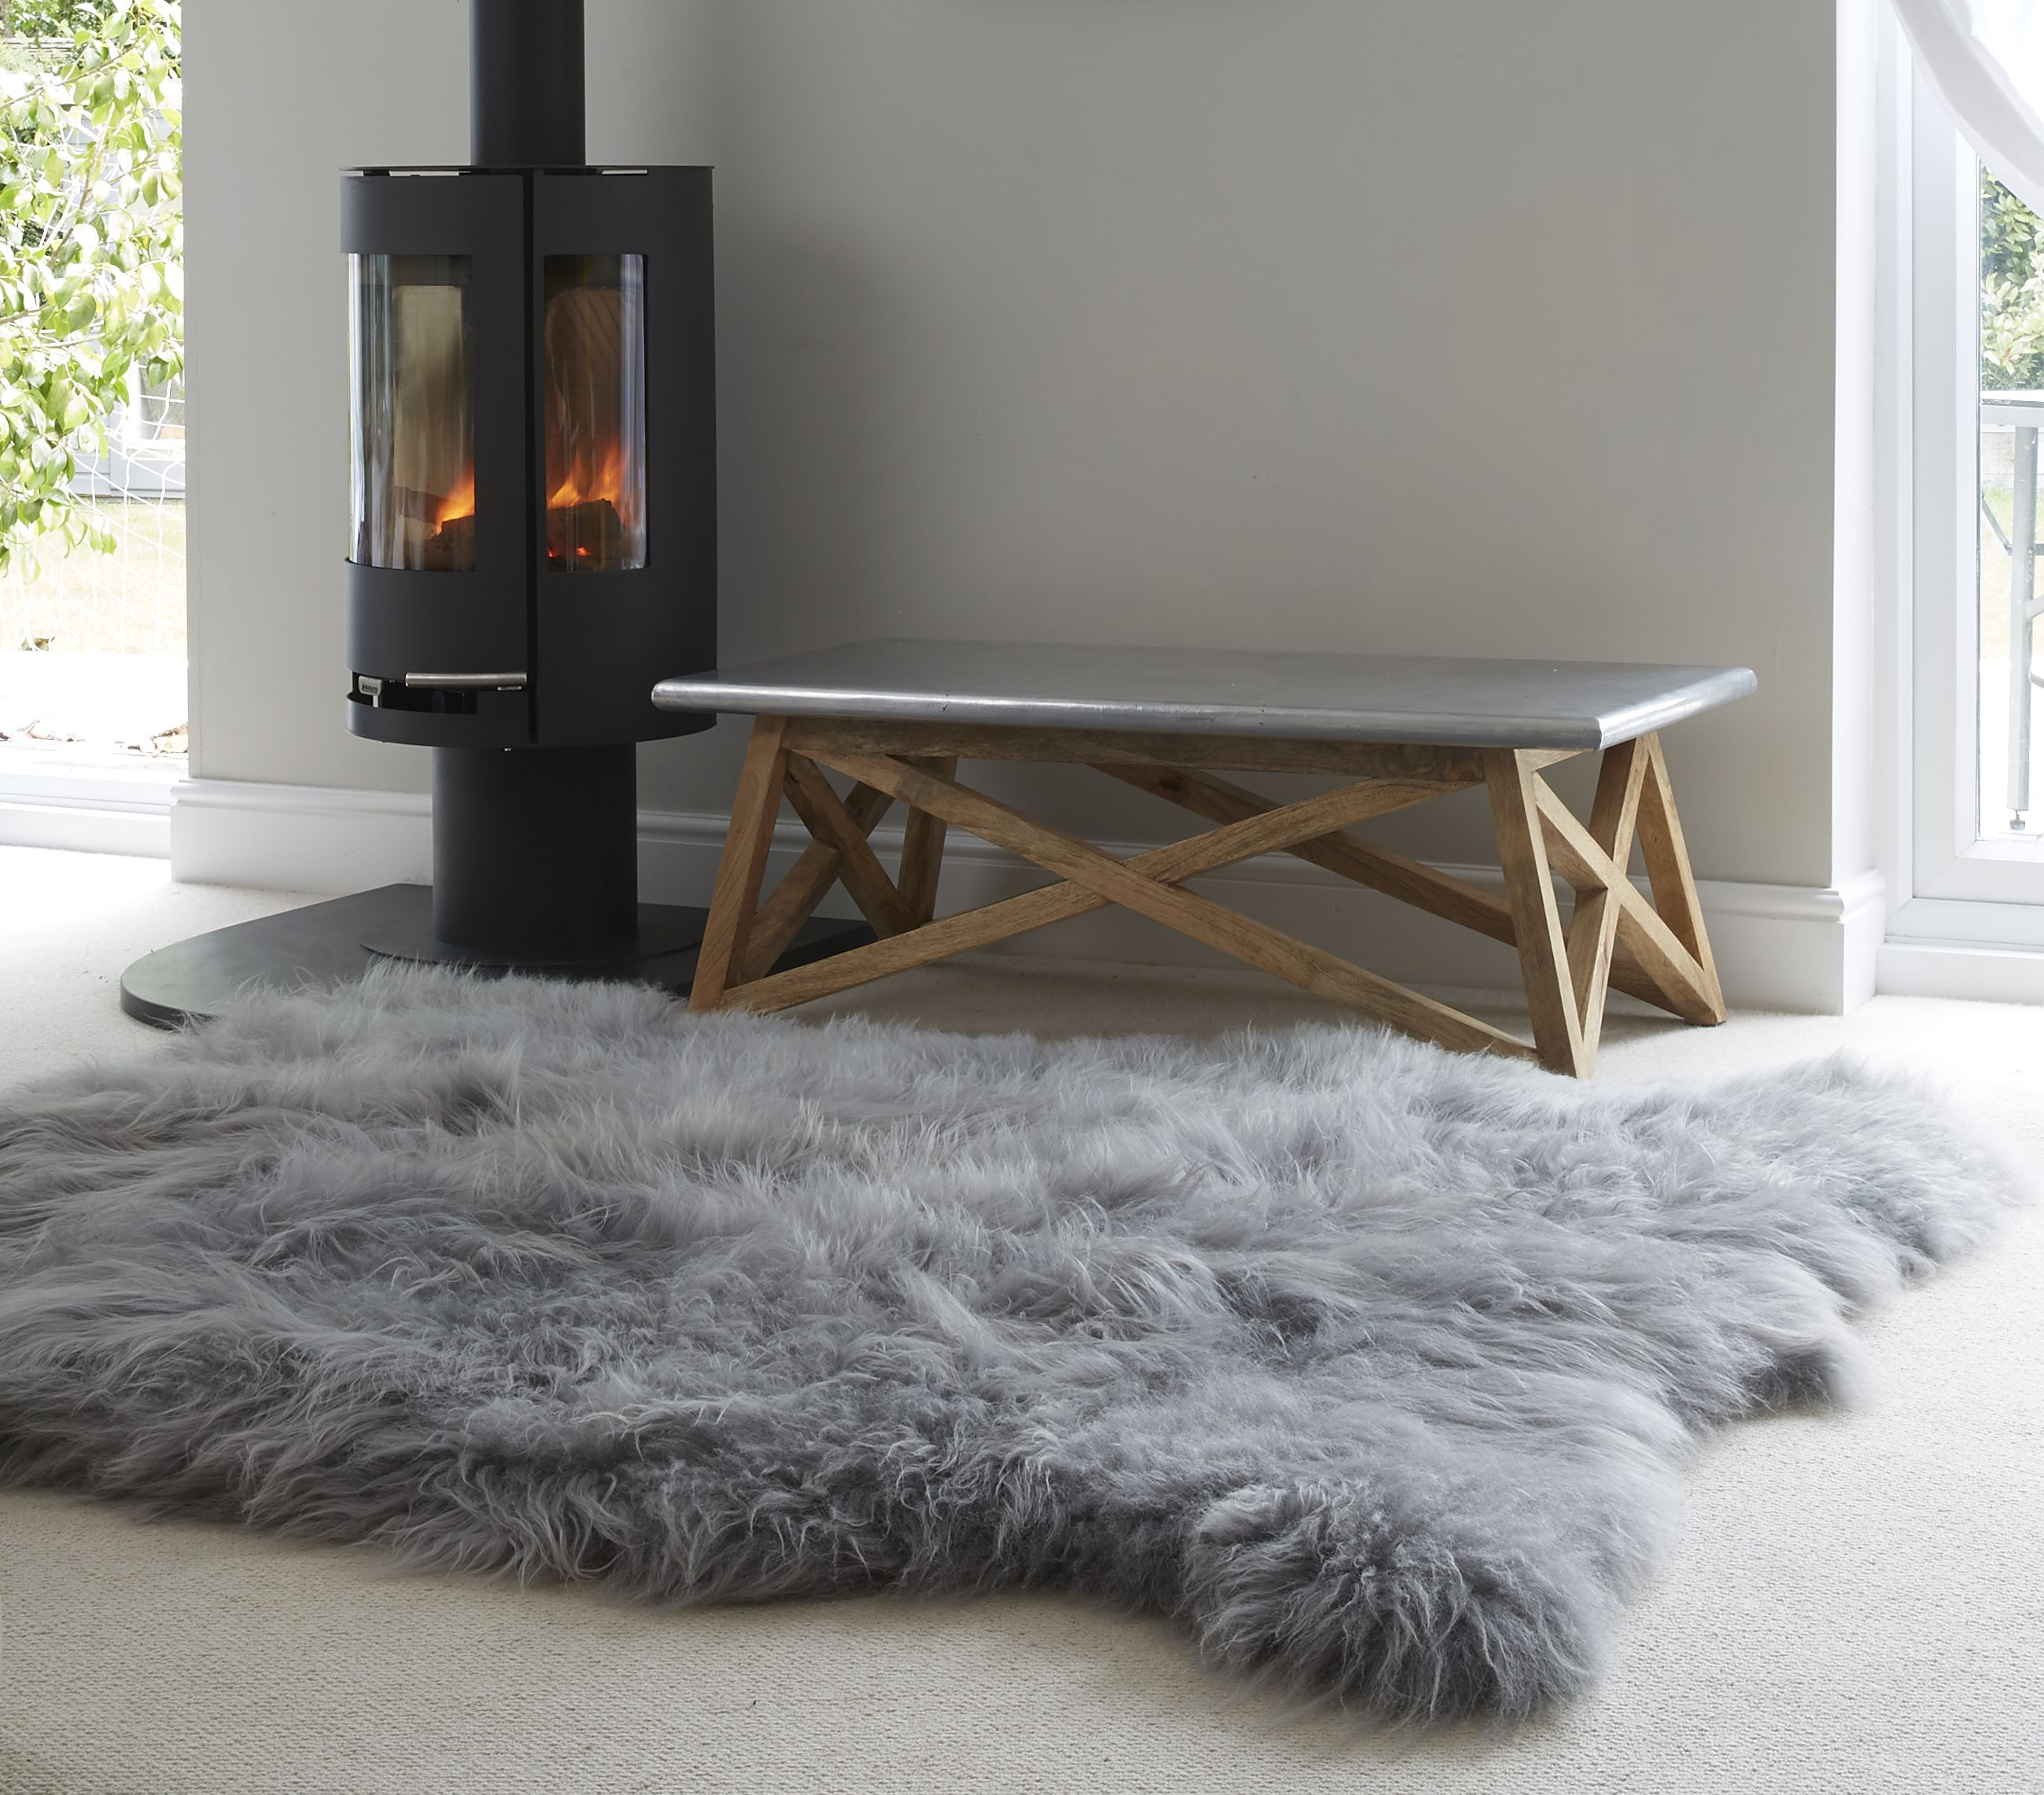 Create A Wow Factor In Your Home With Our Extensive Range Of Large Sheepskin Rugs Perfect Laid Out On The Floor Or D Over Sofa